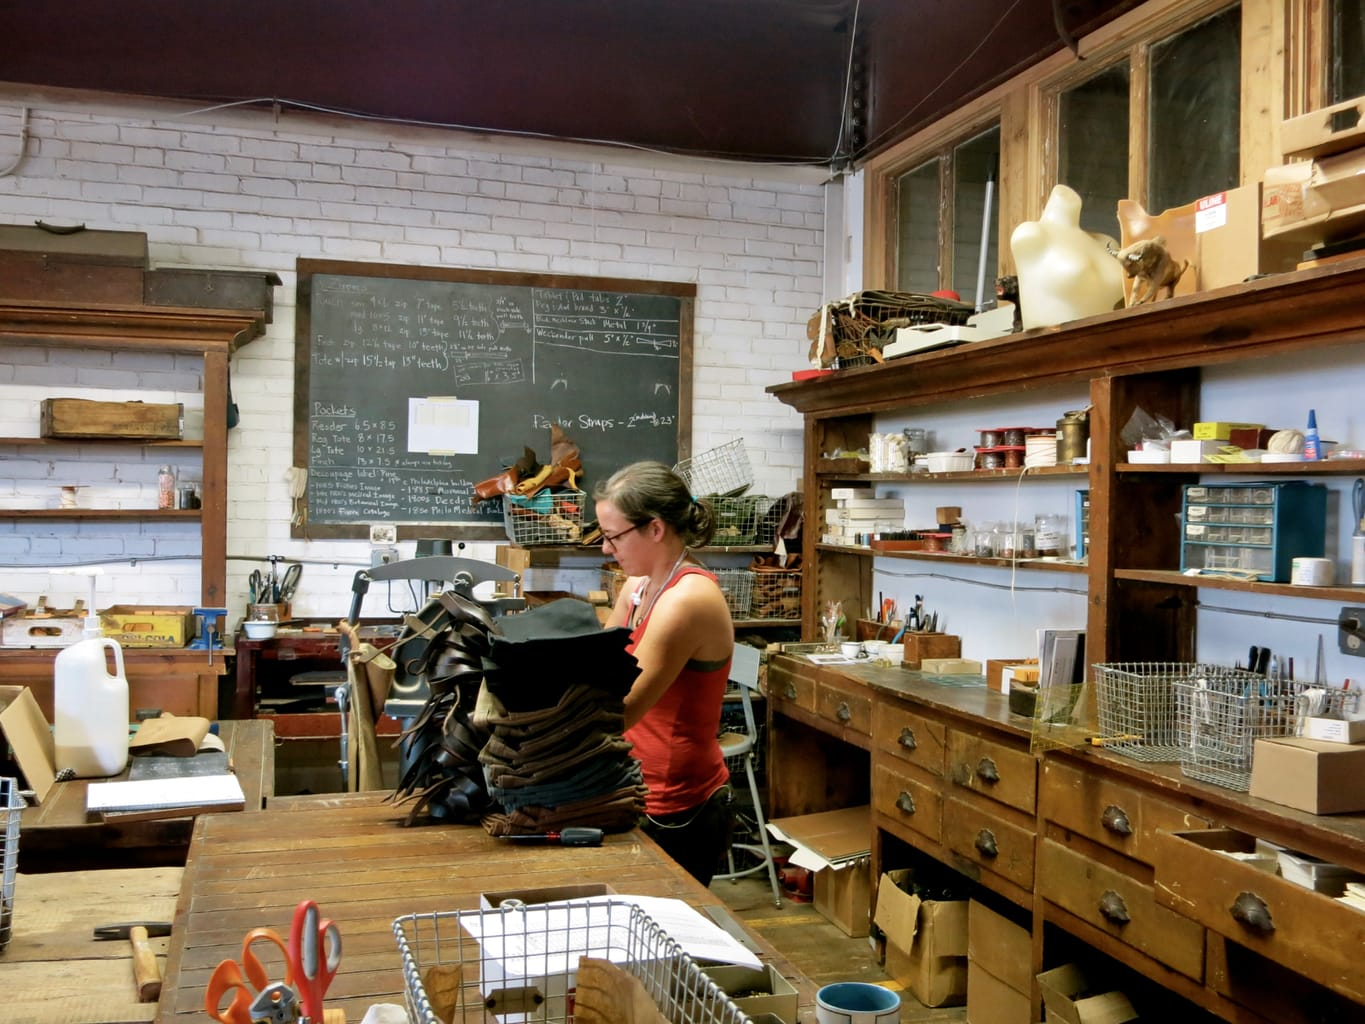 At work at Peg and Awl Handcrafted items Philly PA